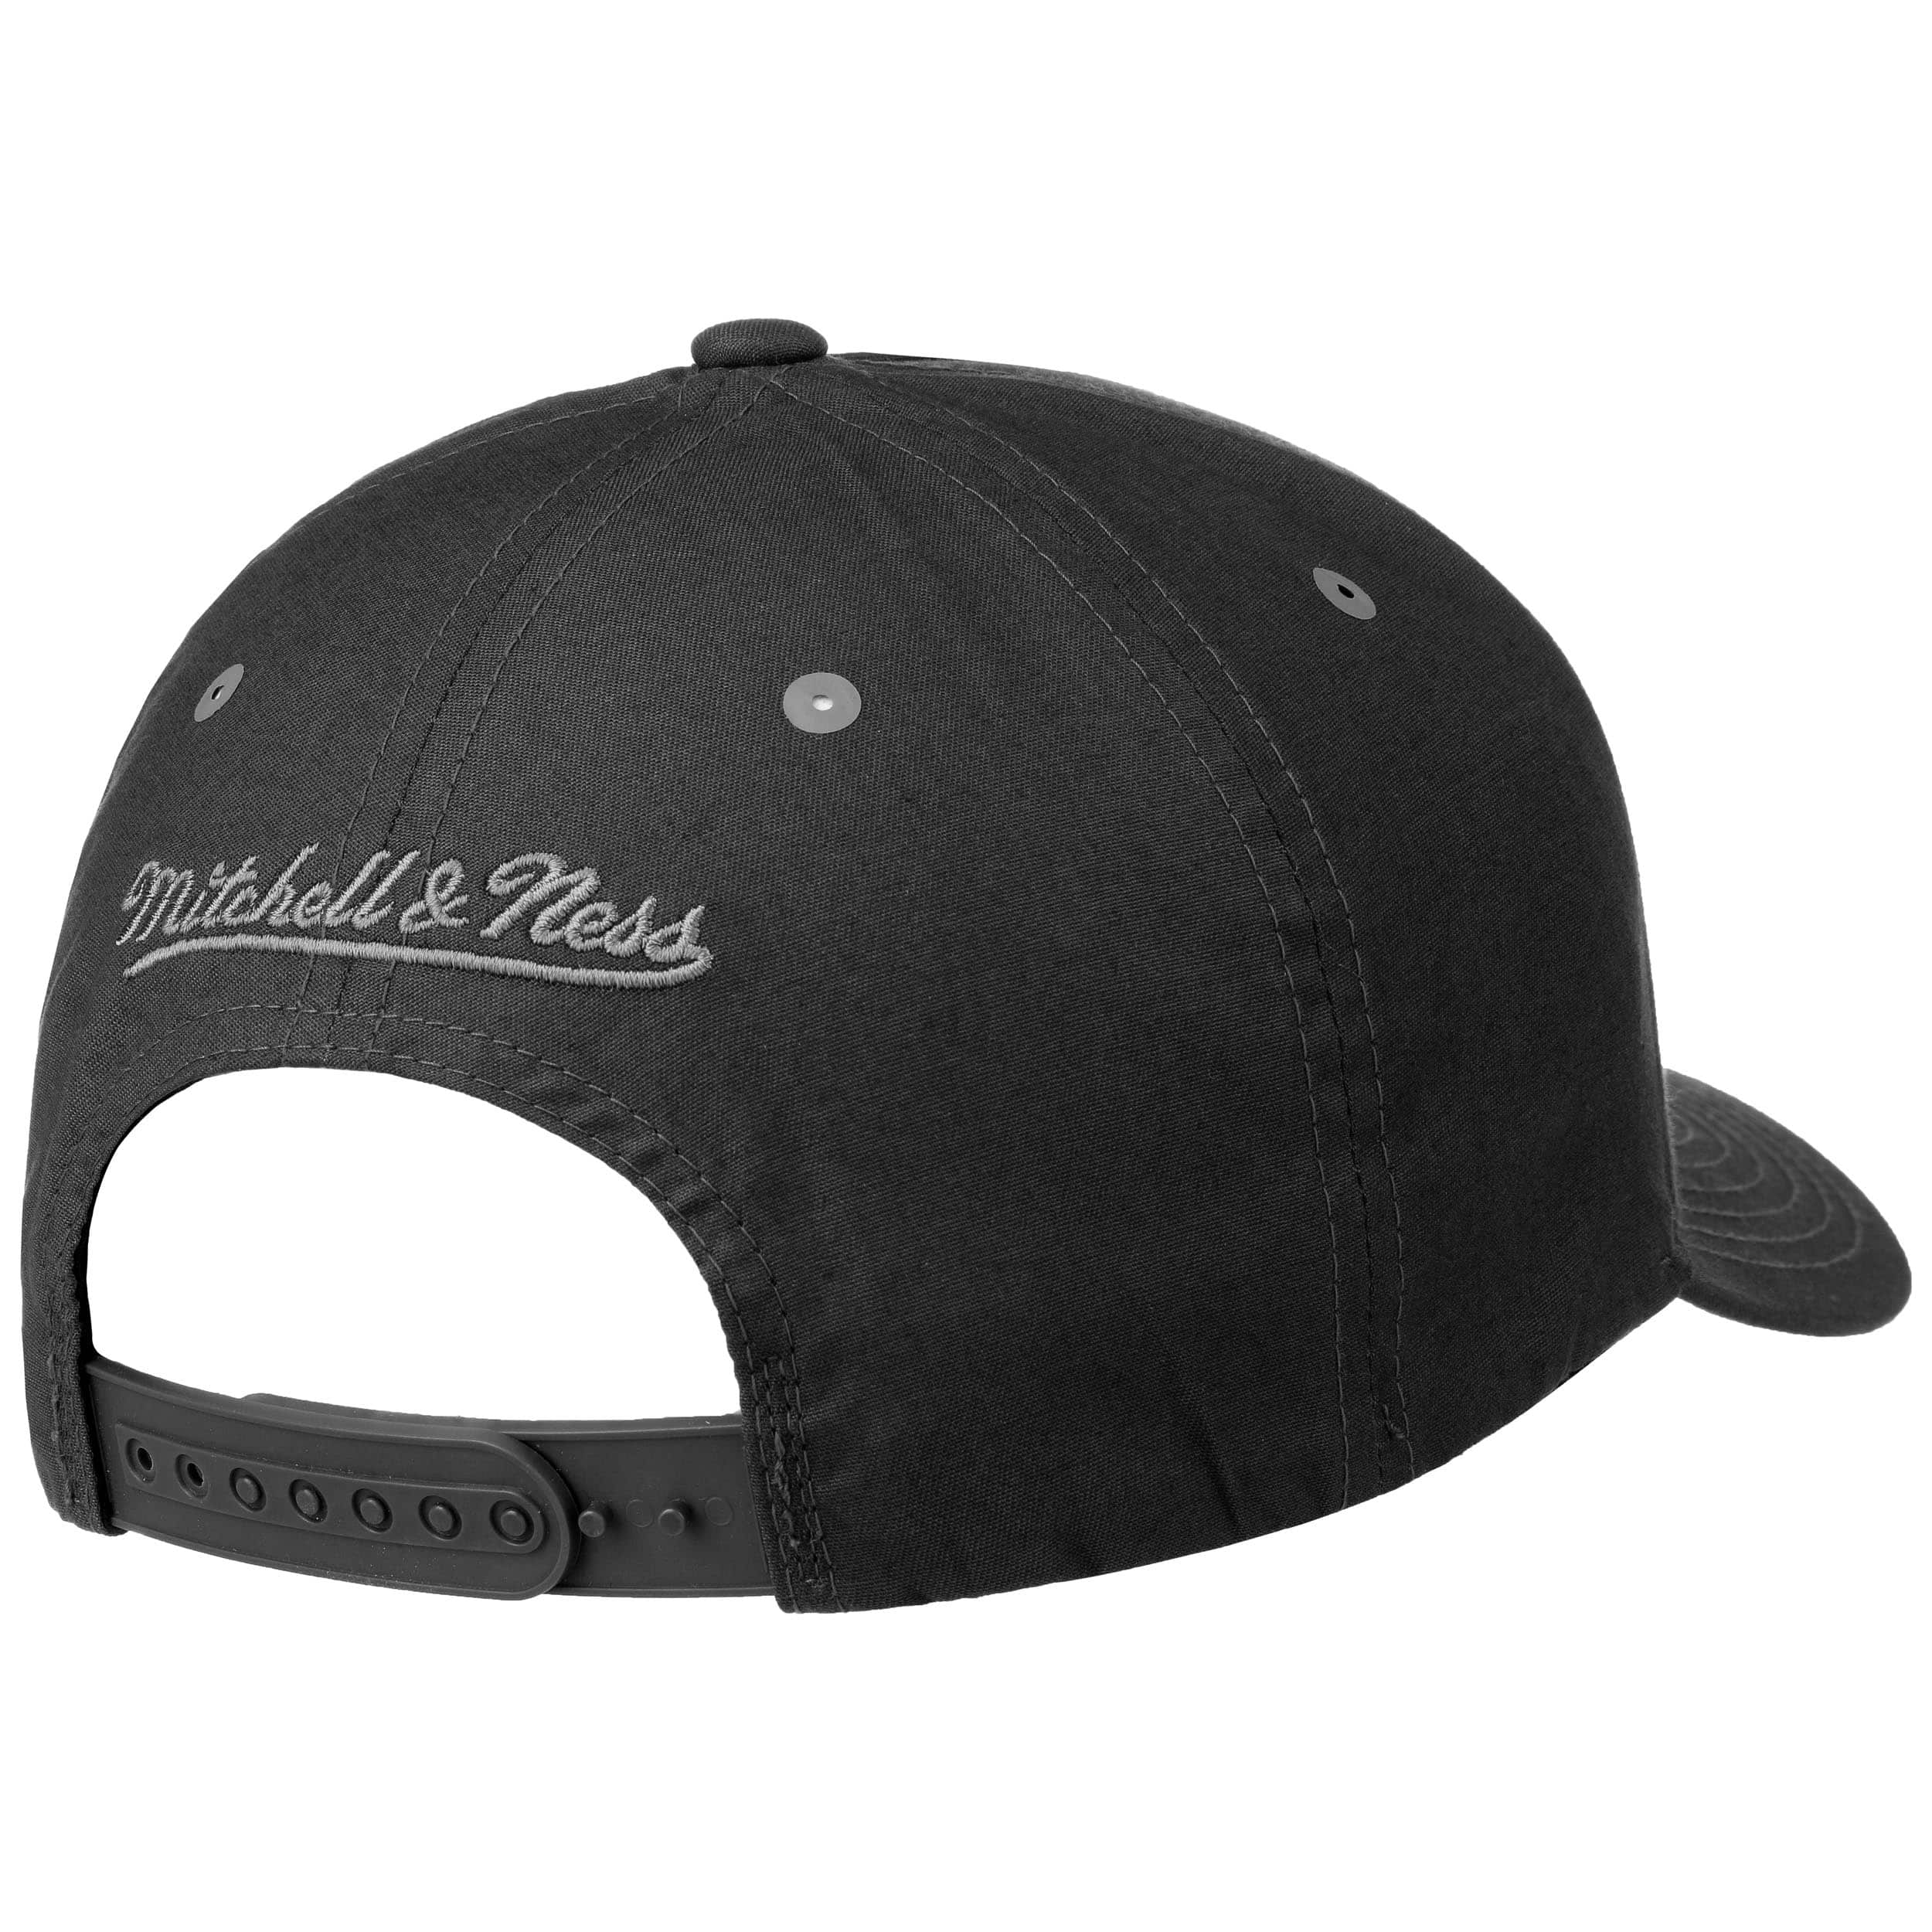 a62381fe ... Tactical Snapback Cap by Mitchell & Ness - black 3 ...